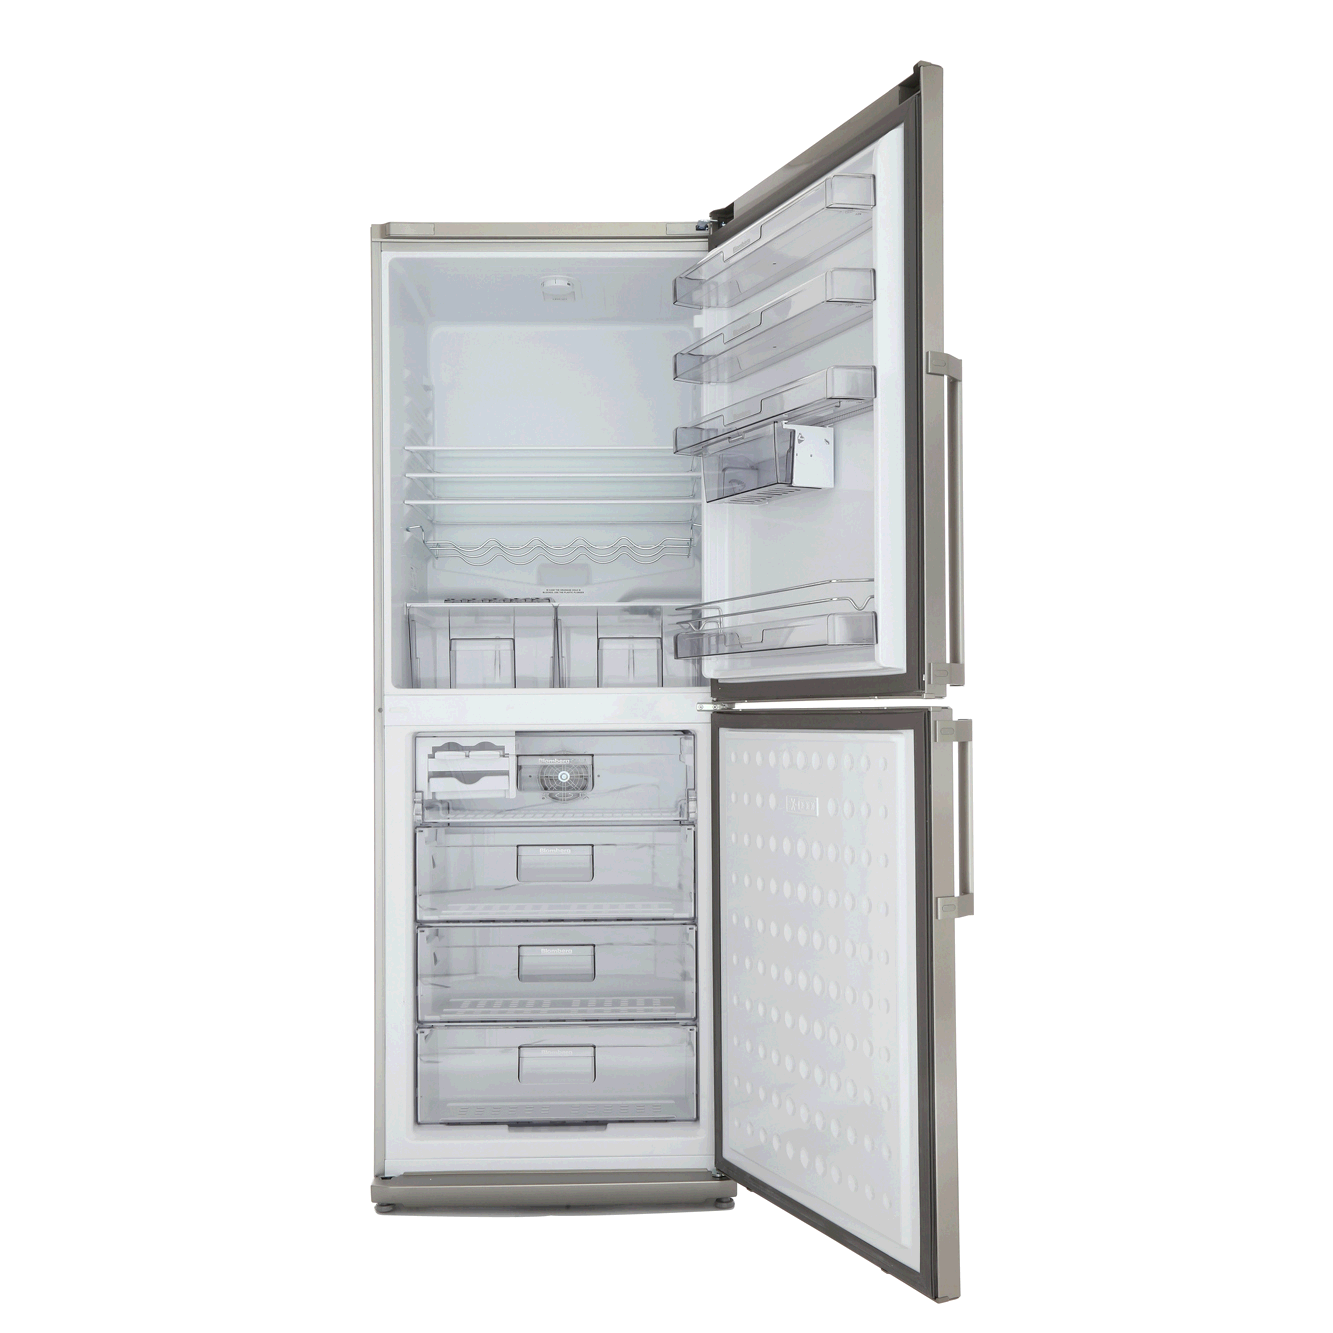 Blomberg Frost Free Fridge Freezer H190cm W 70cm D60cm Stainless/Silver